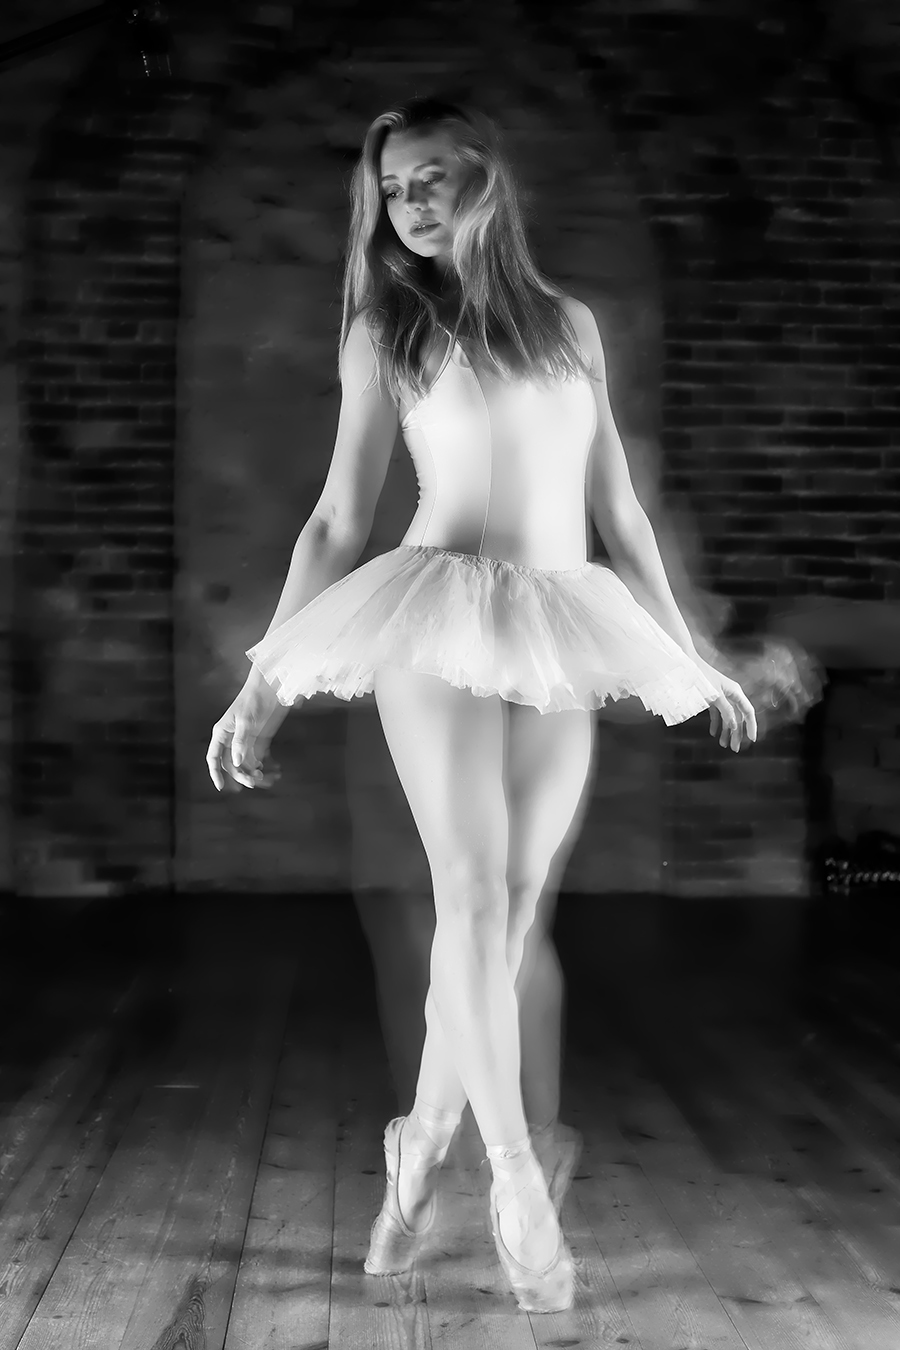 Ghost Dancer / Photography by GaryMac Photography, Model Ayla, Taken at Millwood Photography Studio (Jamie Booth Photography) / Uploaded 11th August 2017 @ 12:05 AM